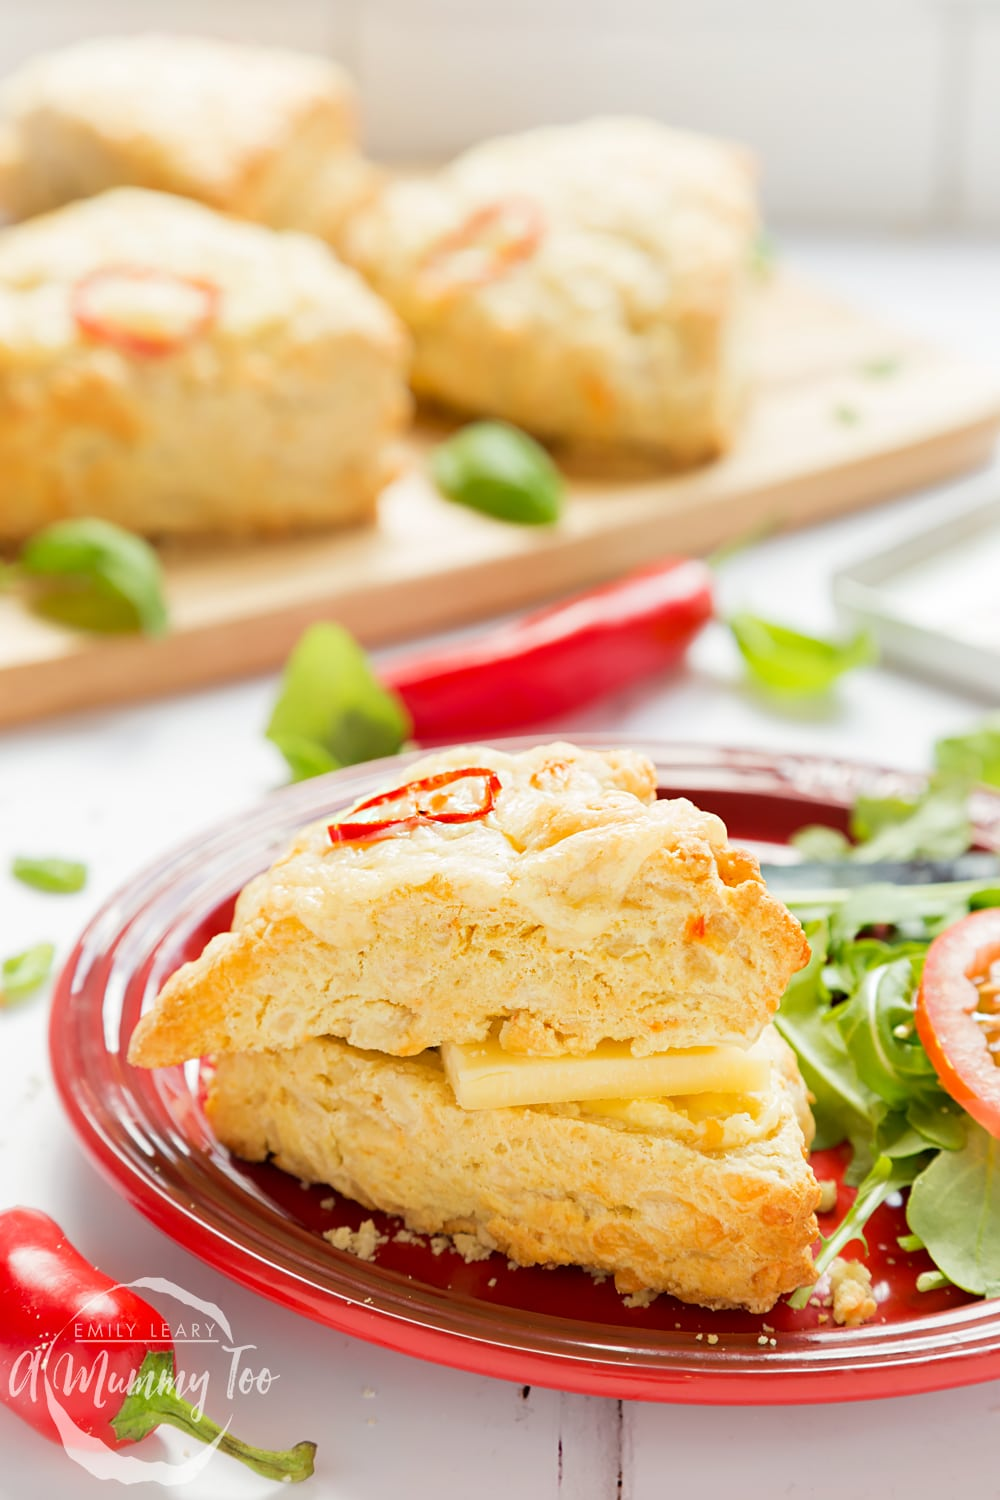 Chilli cheese savoury scones served with a side salad